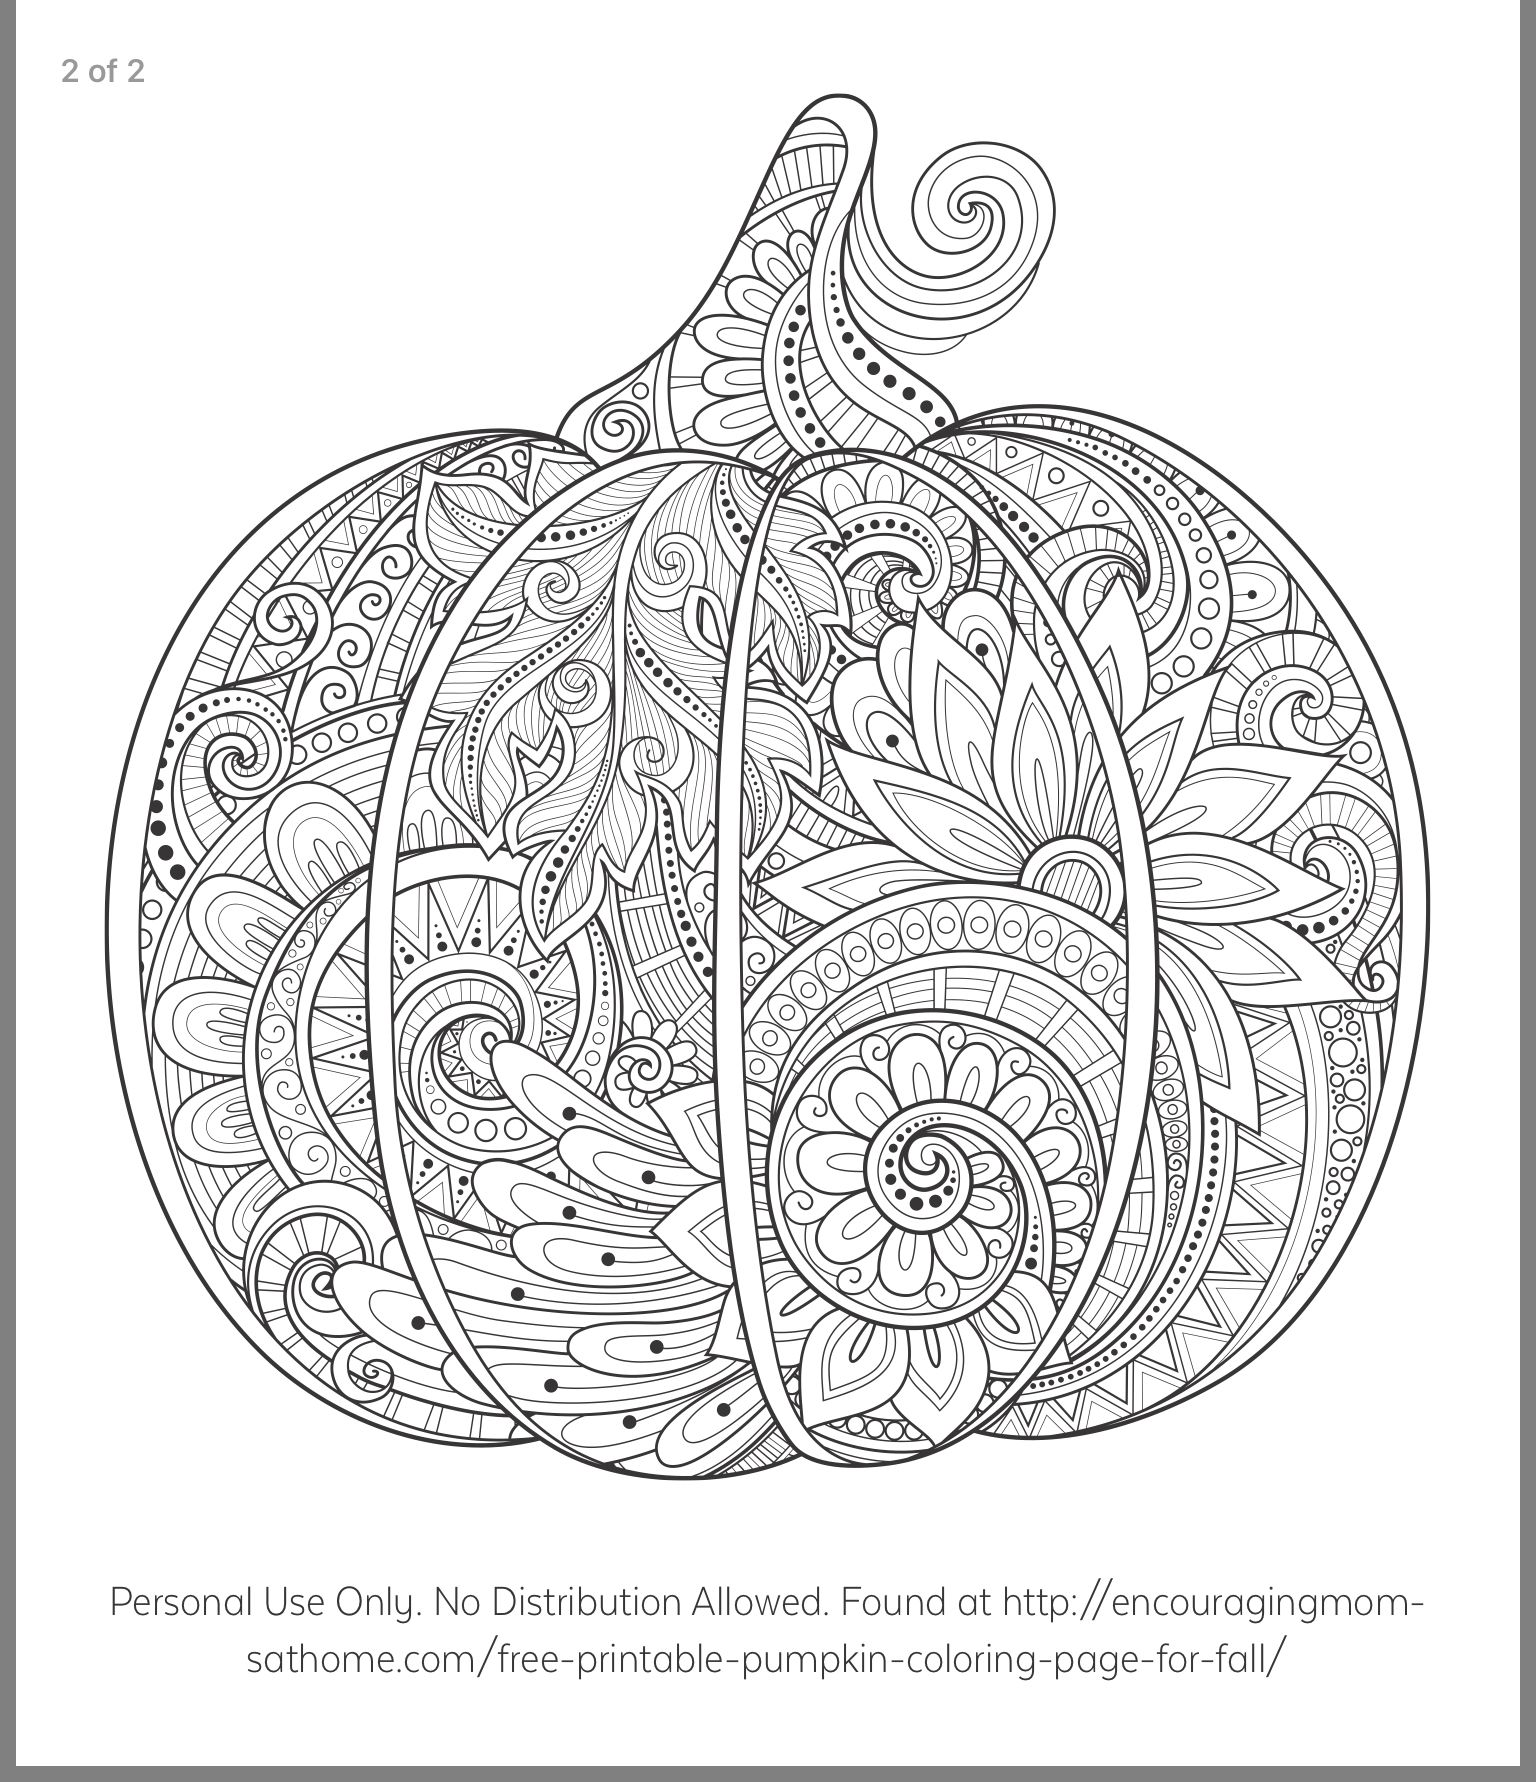 Pin By Iren Tasnadine Szabo On Crafts Pumpkin Coloring Pages Fall Coloring Pages Halloween Coloring